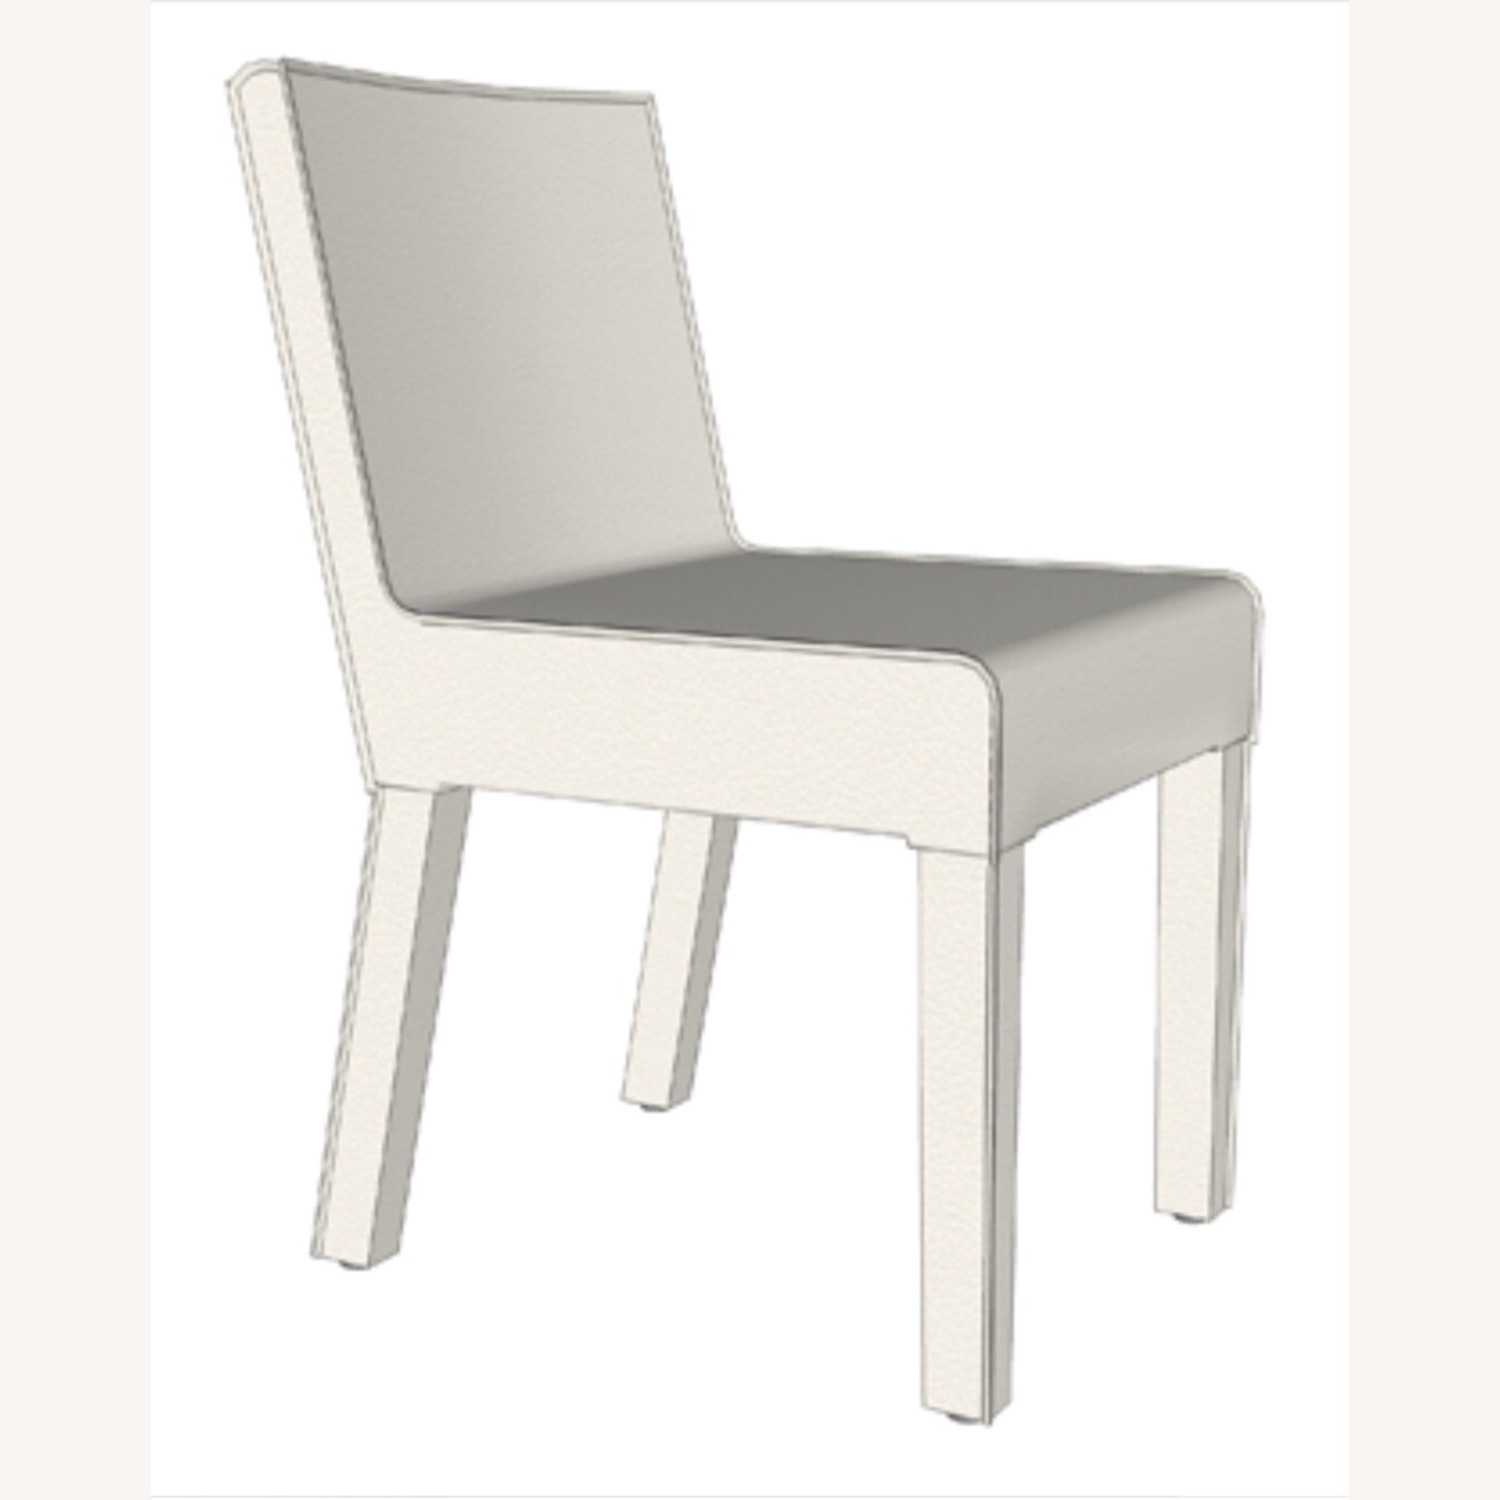 4 Chalk Leather Dining Chairs - image-5